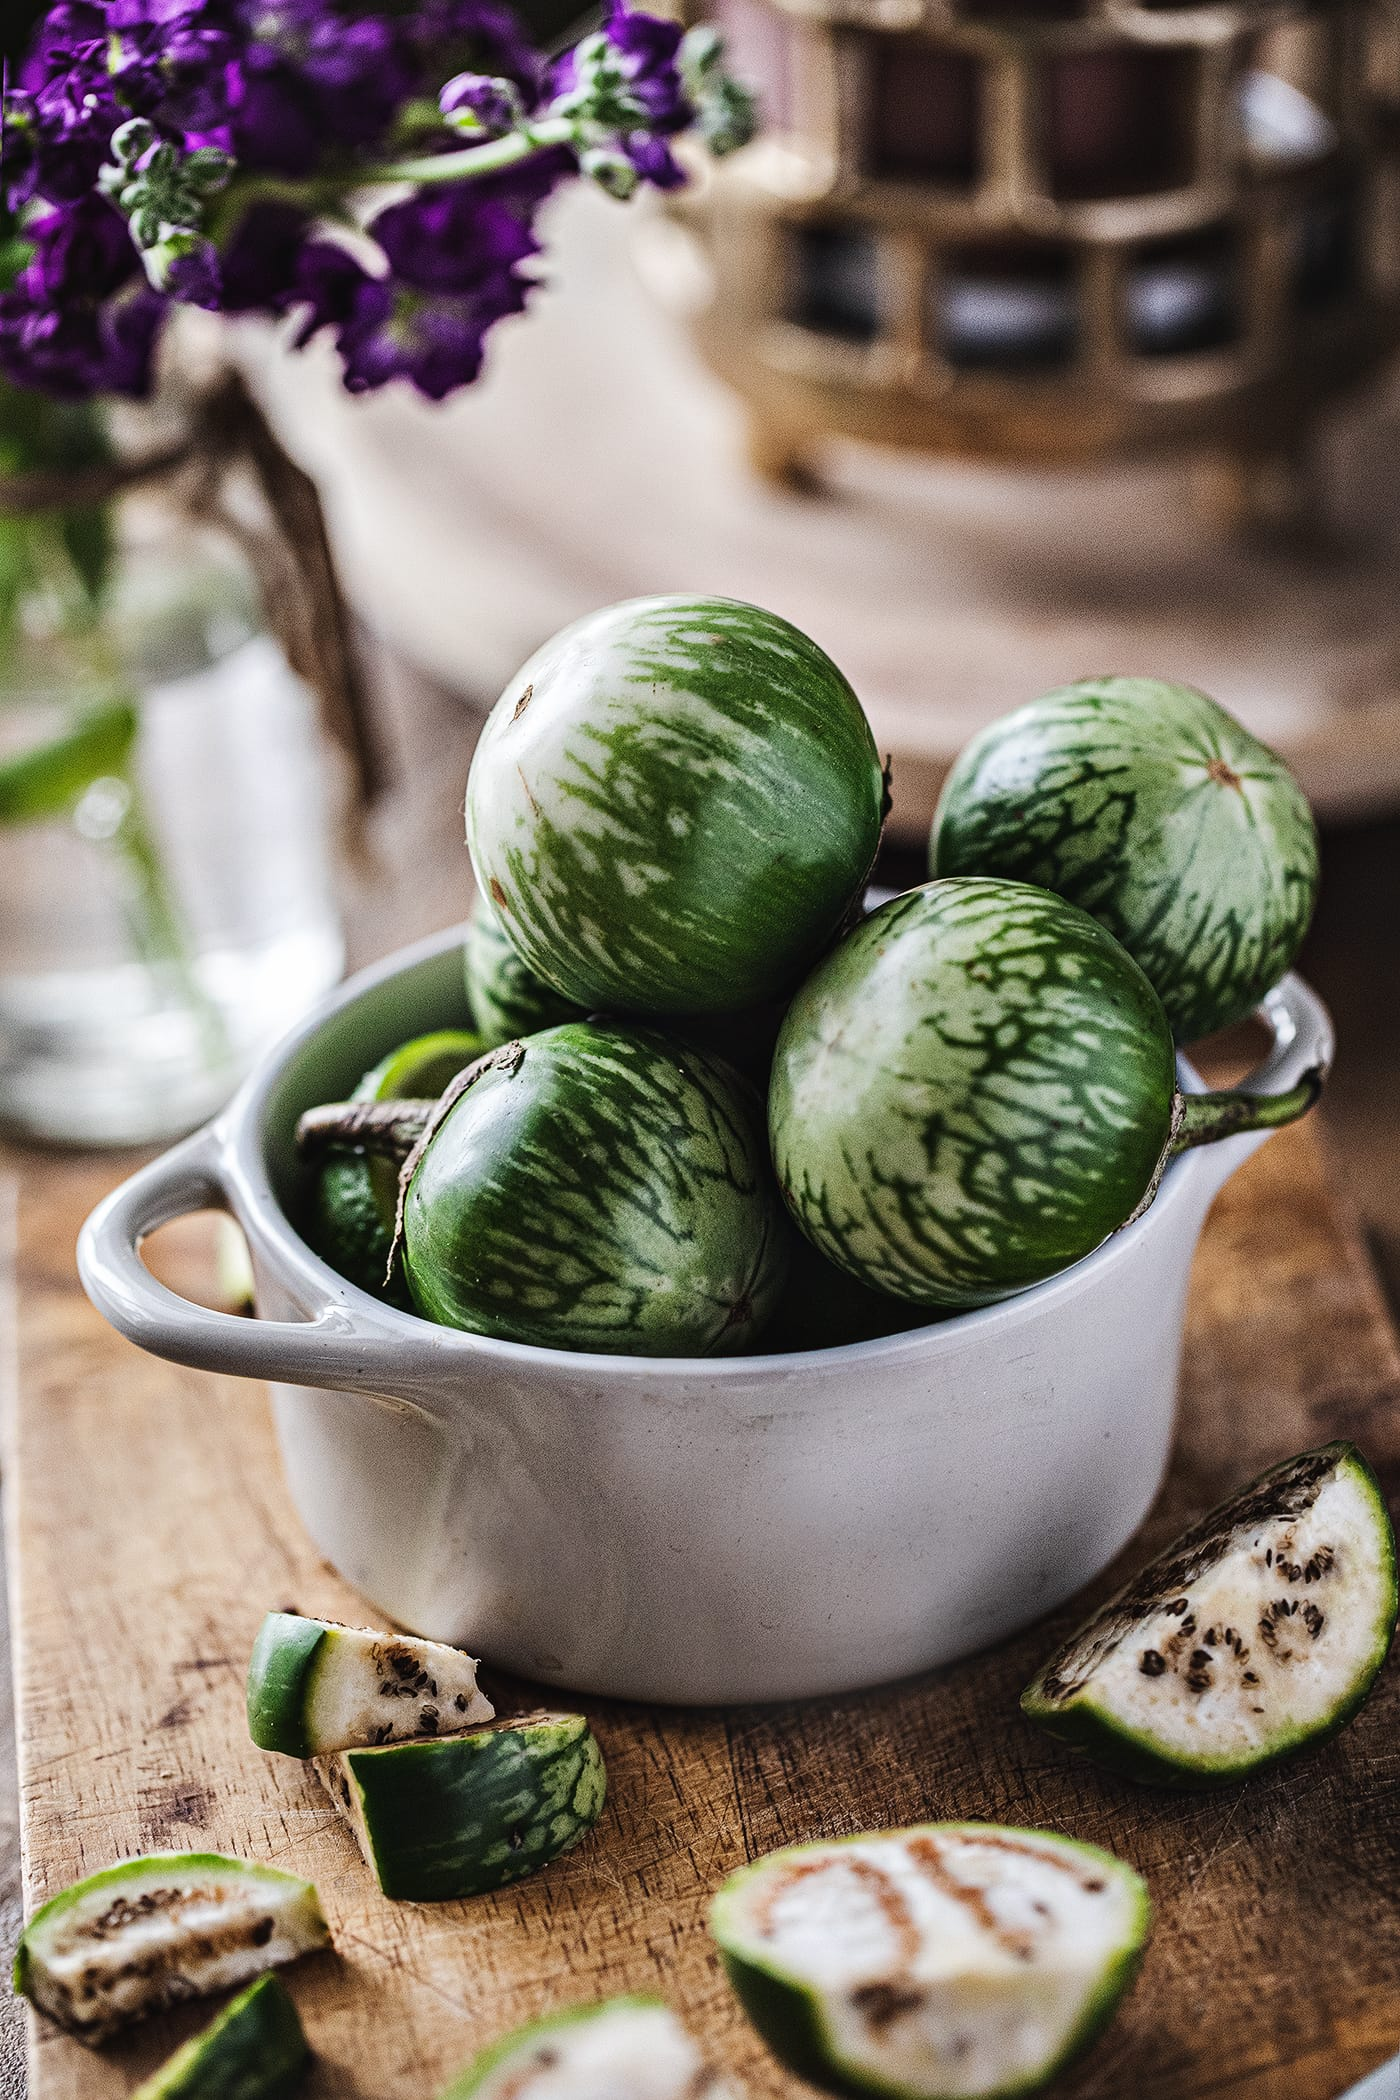 Thai eggplants are from the eggplant family, they have a white interior with tiny soft seeds that look almost like pepper seeds. The taste is crispy and a tiny bit earthly and way less chewy than the long purple eggplants. #thaieggplants #thaifood #eggplants